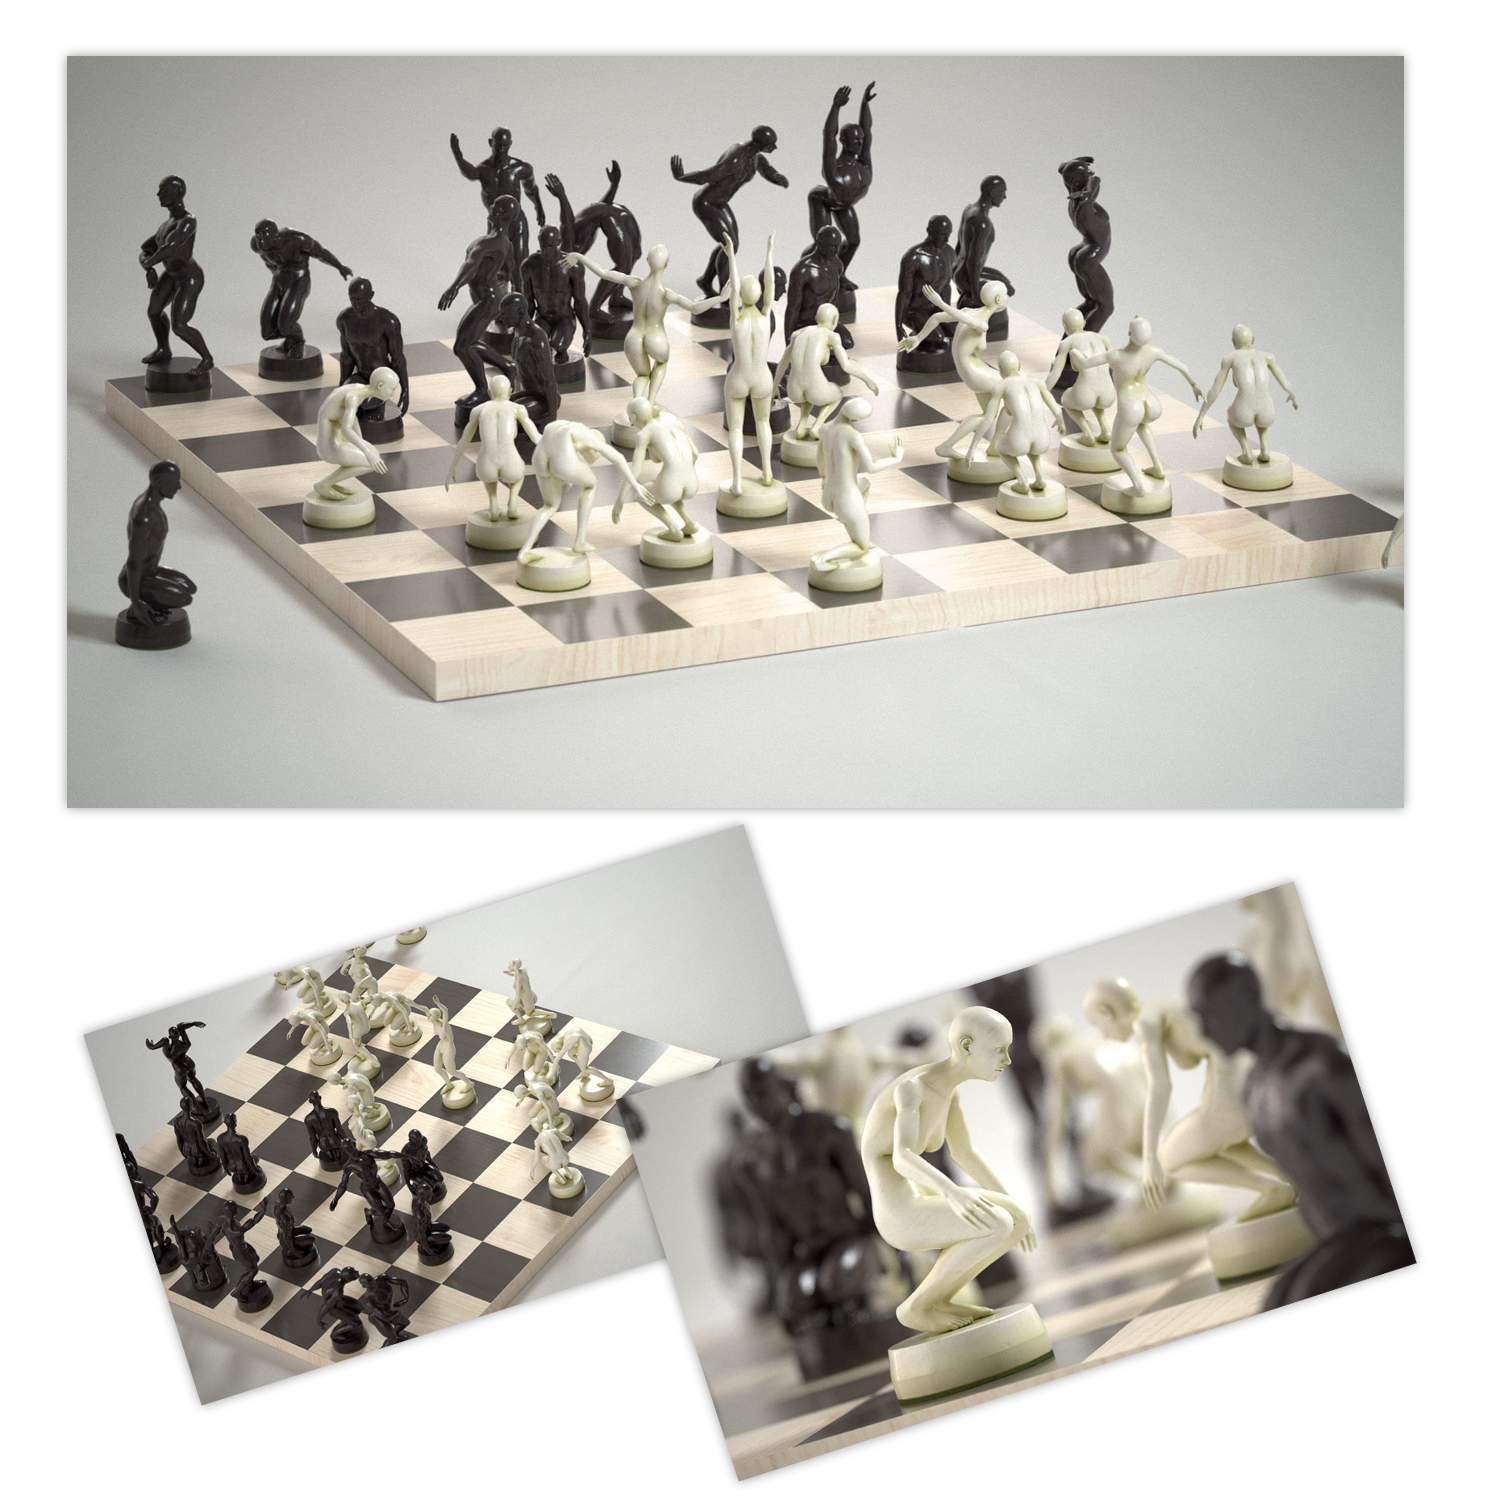 wtf hand crafted chess set omg gimme